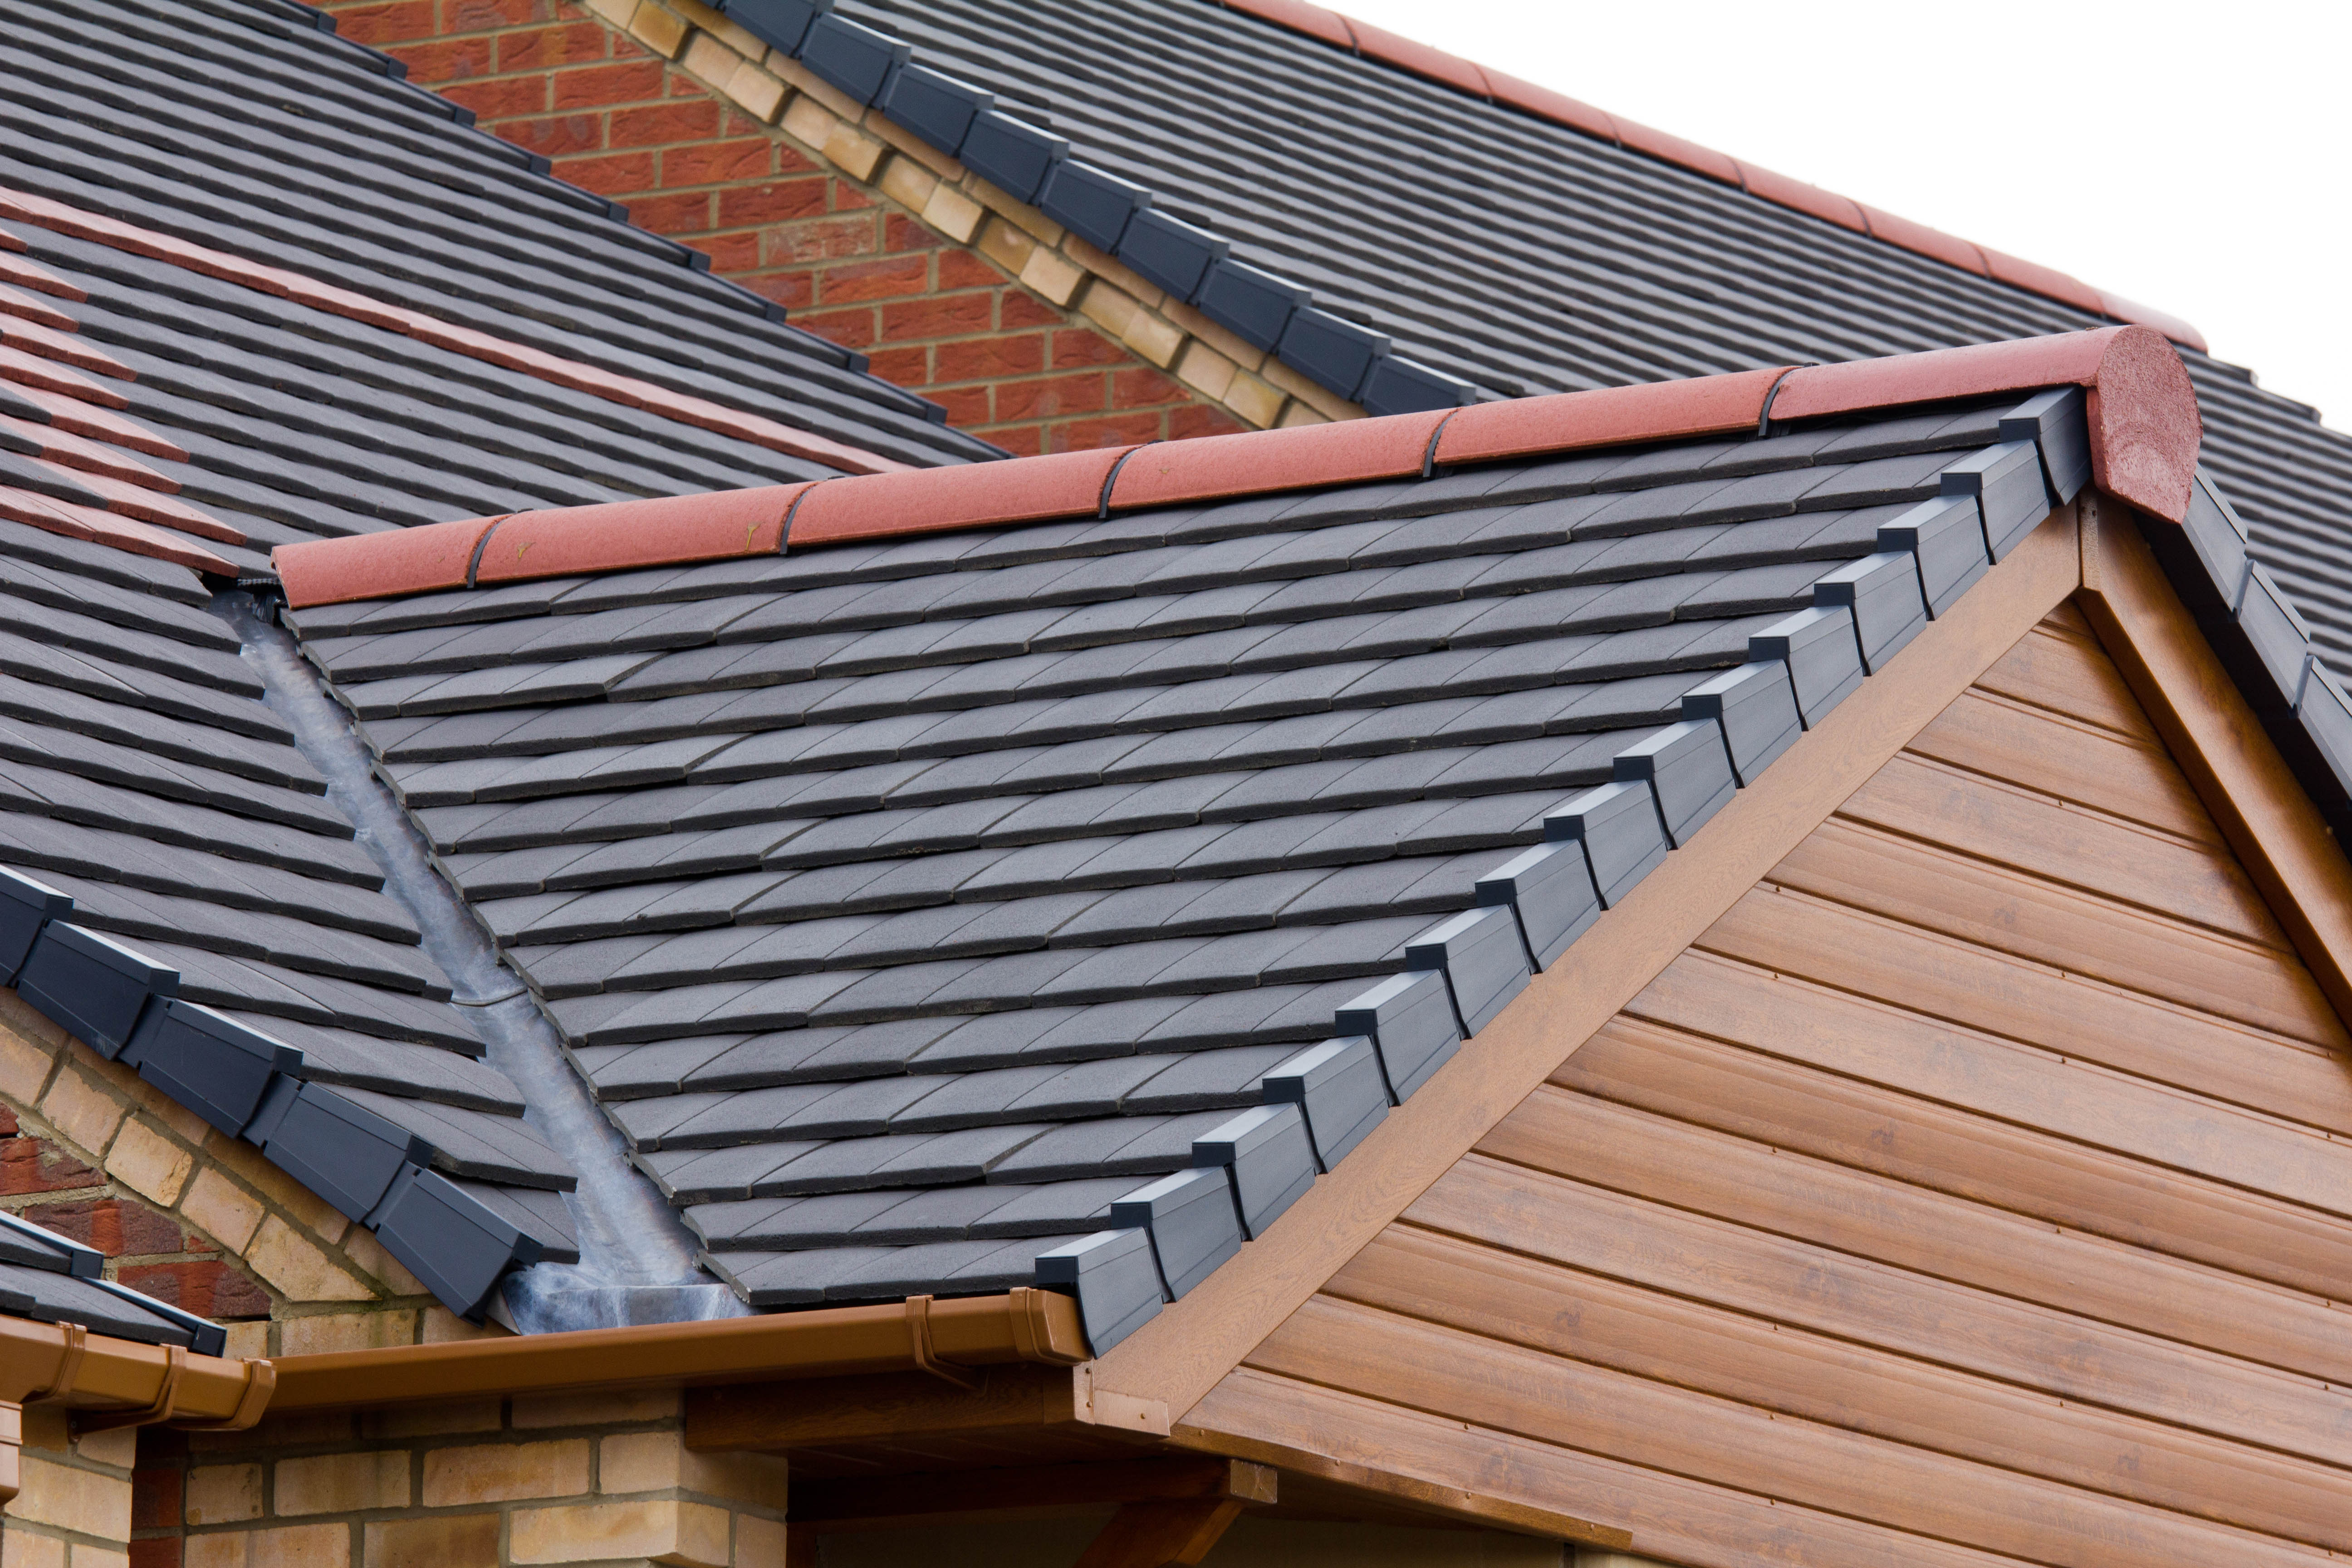 A I Roofing : St quality roofing roofer in